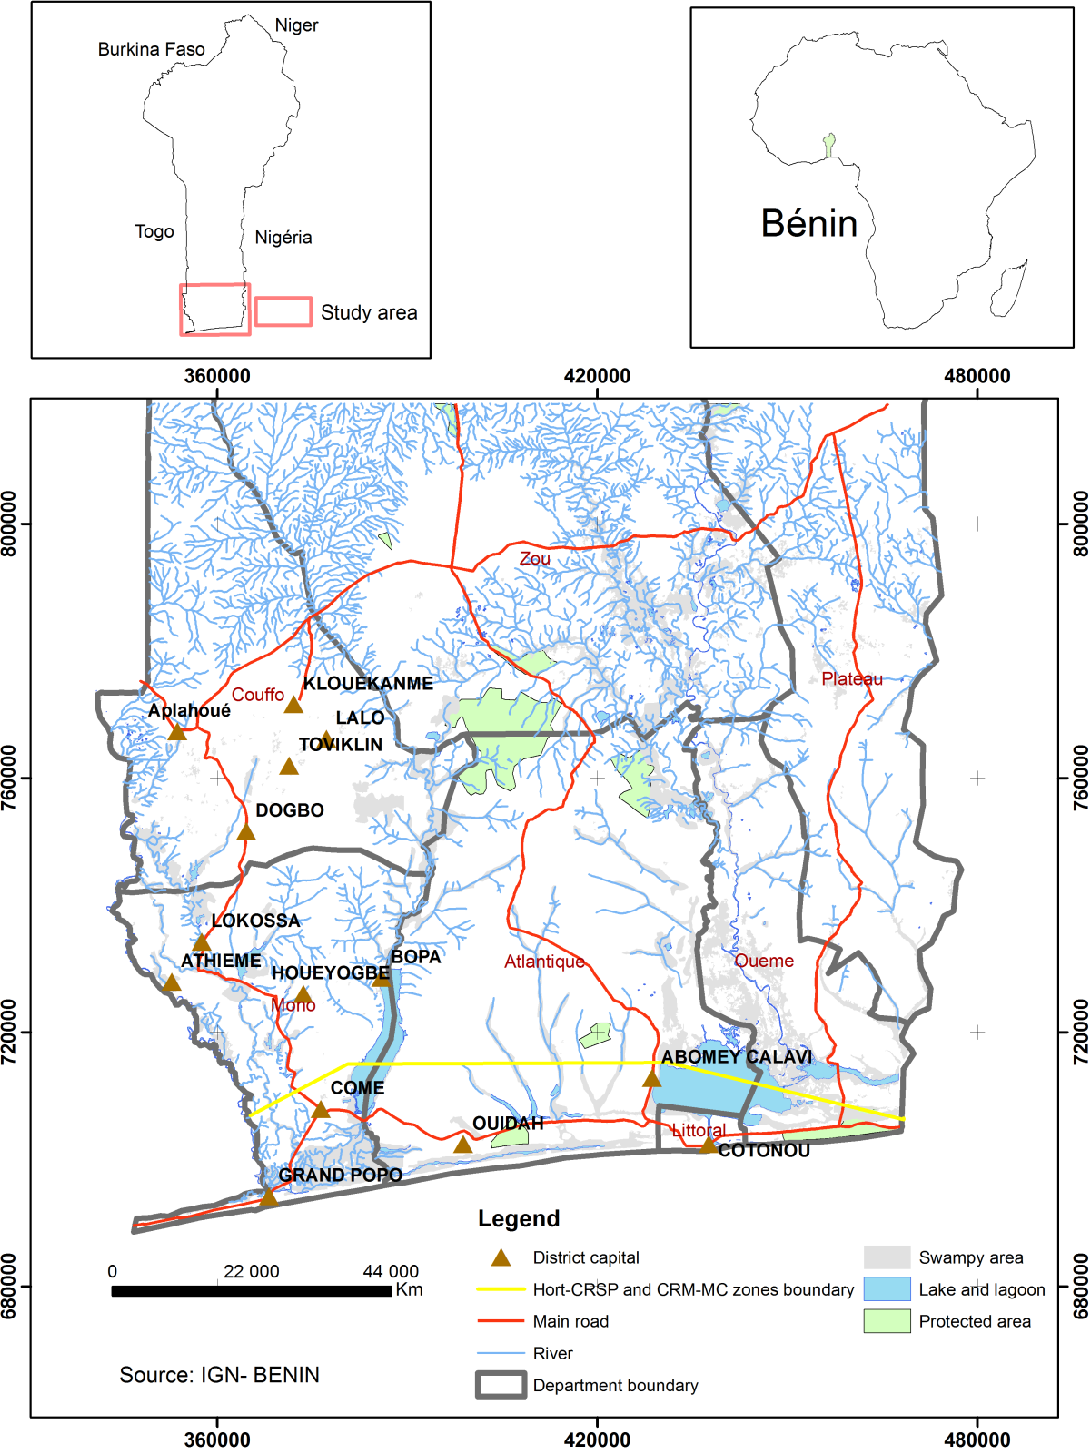 Figure 1. Location of the two survey sites in southern Benin (Cotonou and Abomey Calavi).